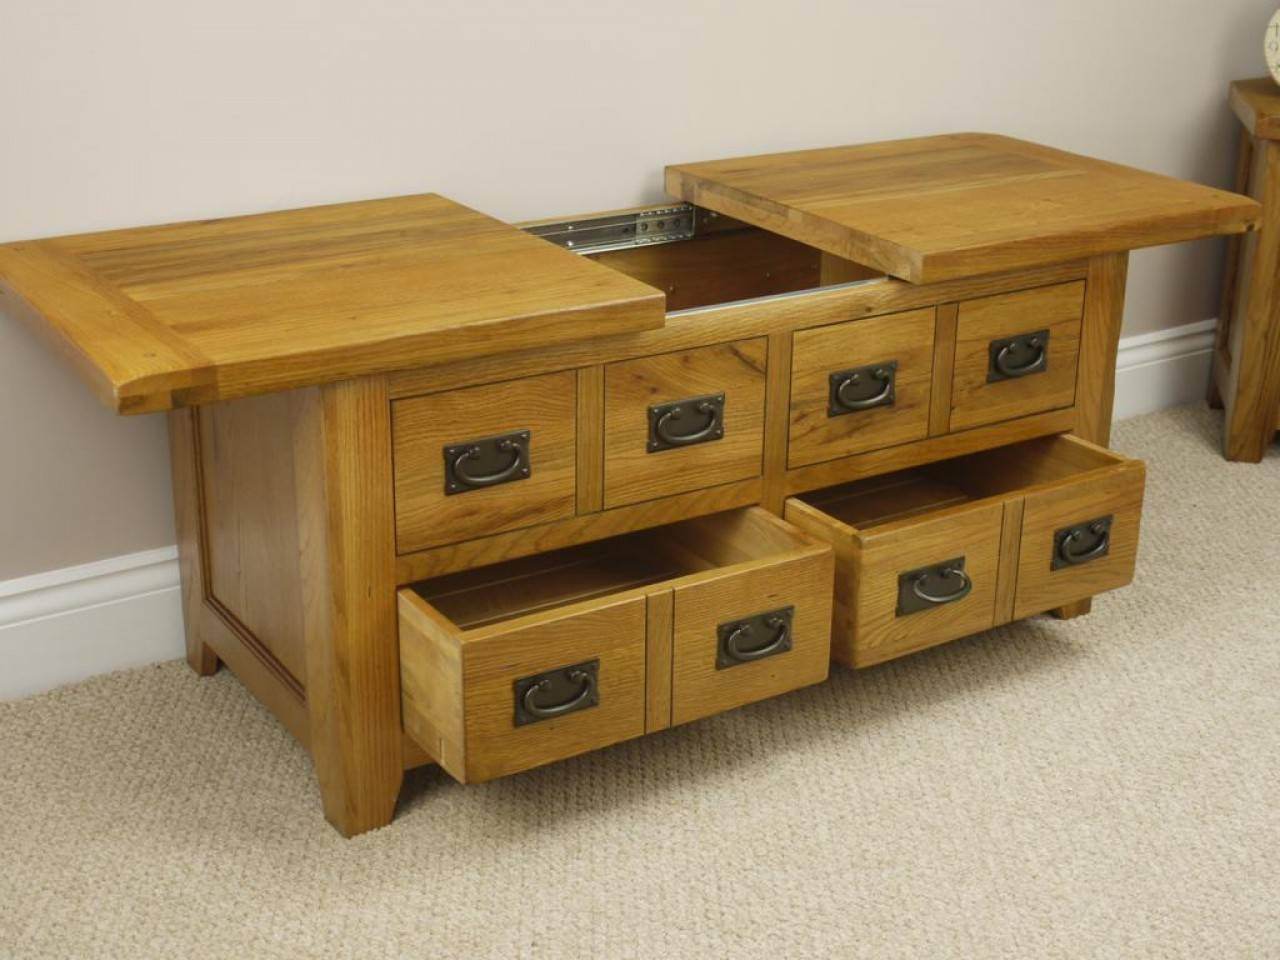 Square Oak Coffee Tables With Storage | Coffee Tables Decoration Throughout Square Coffee Tables With Storages (View 29 of 30)